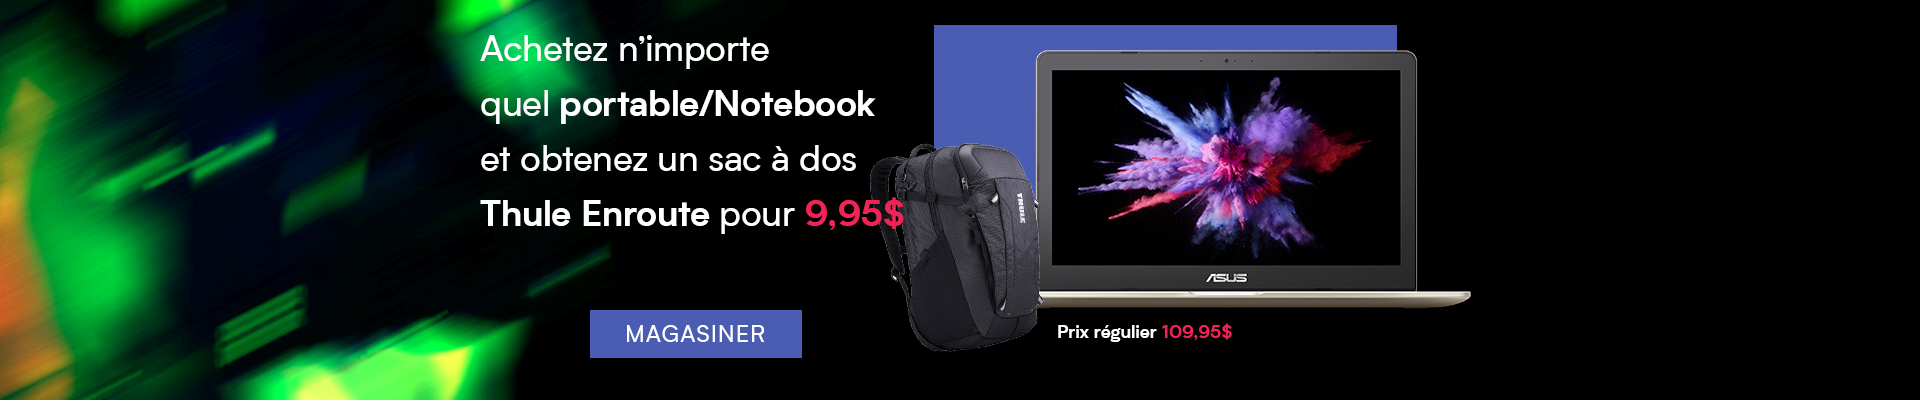 Buy any Laptop/Notebook and get Thule Enroute Backpack for $9.95